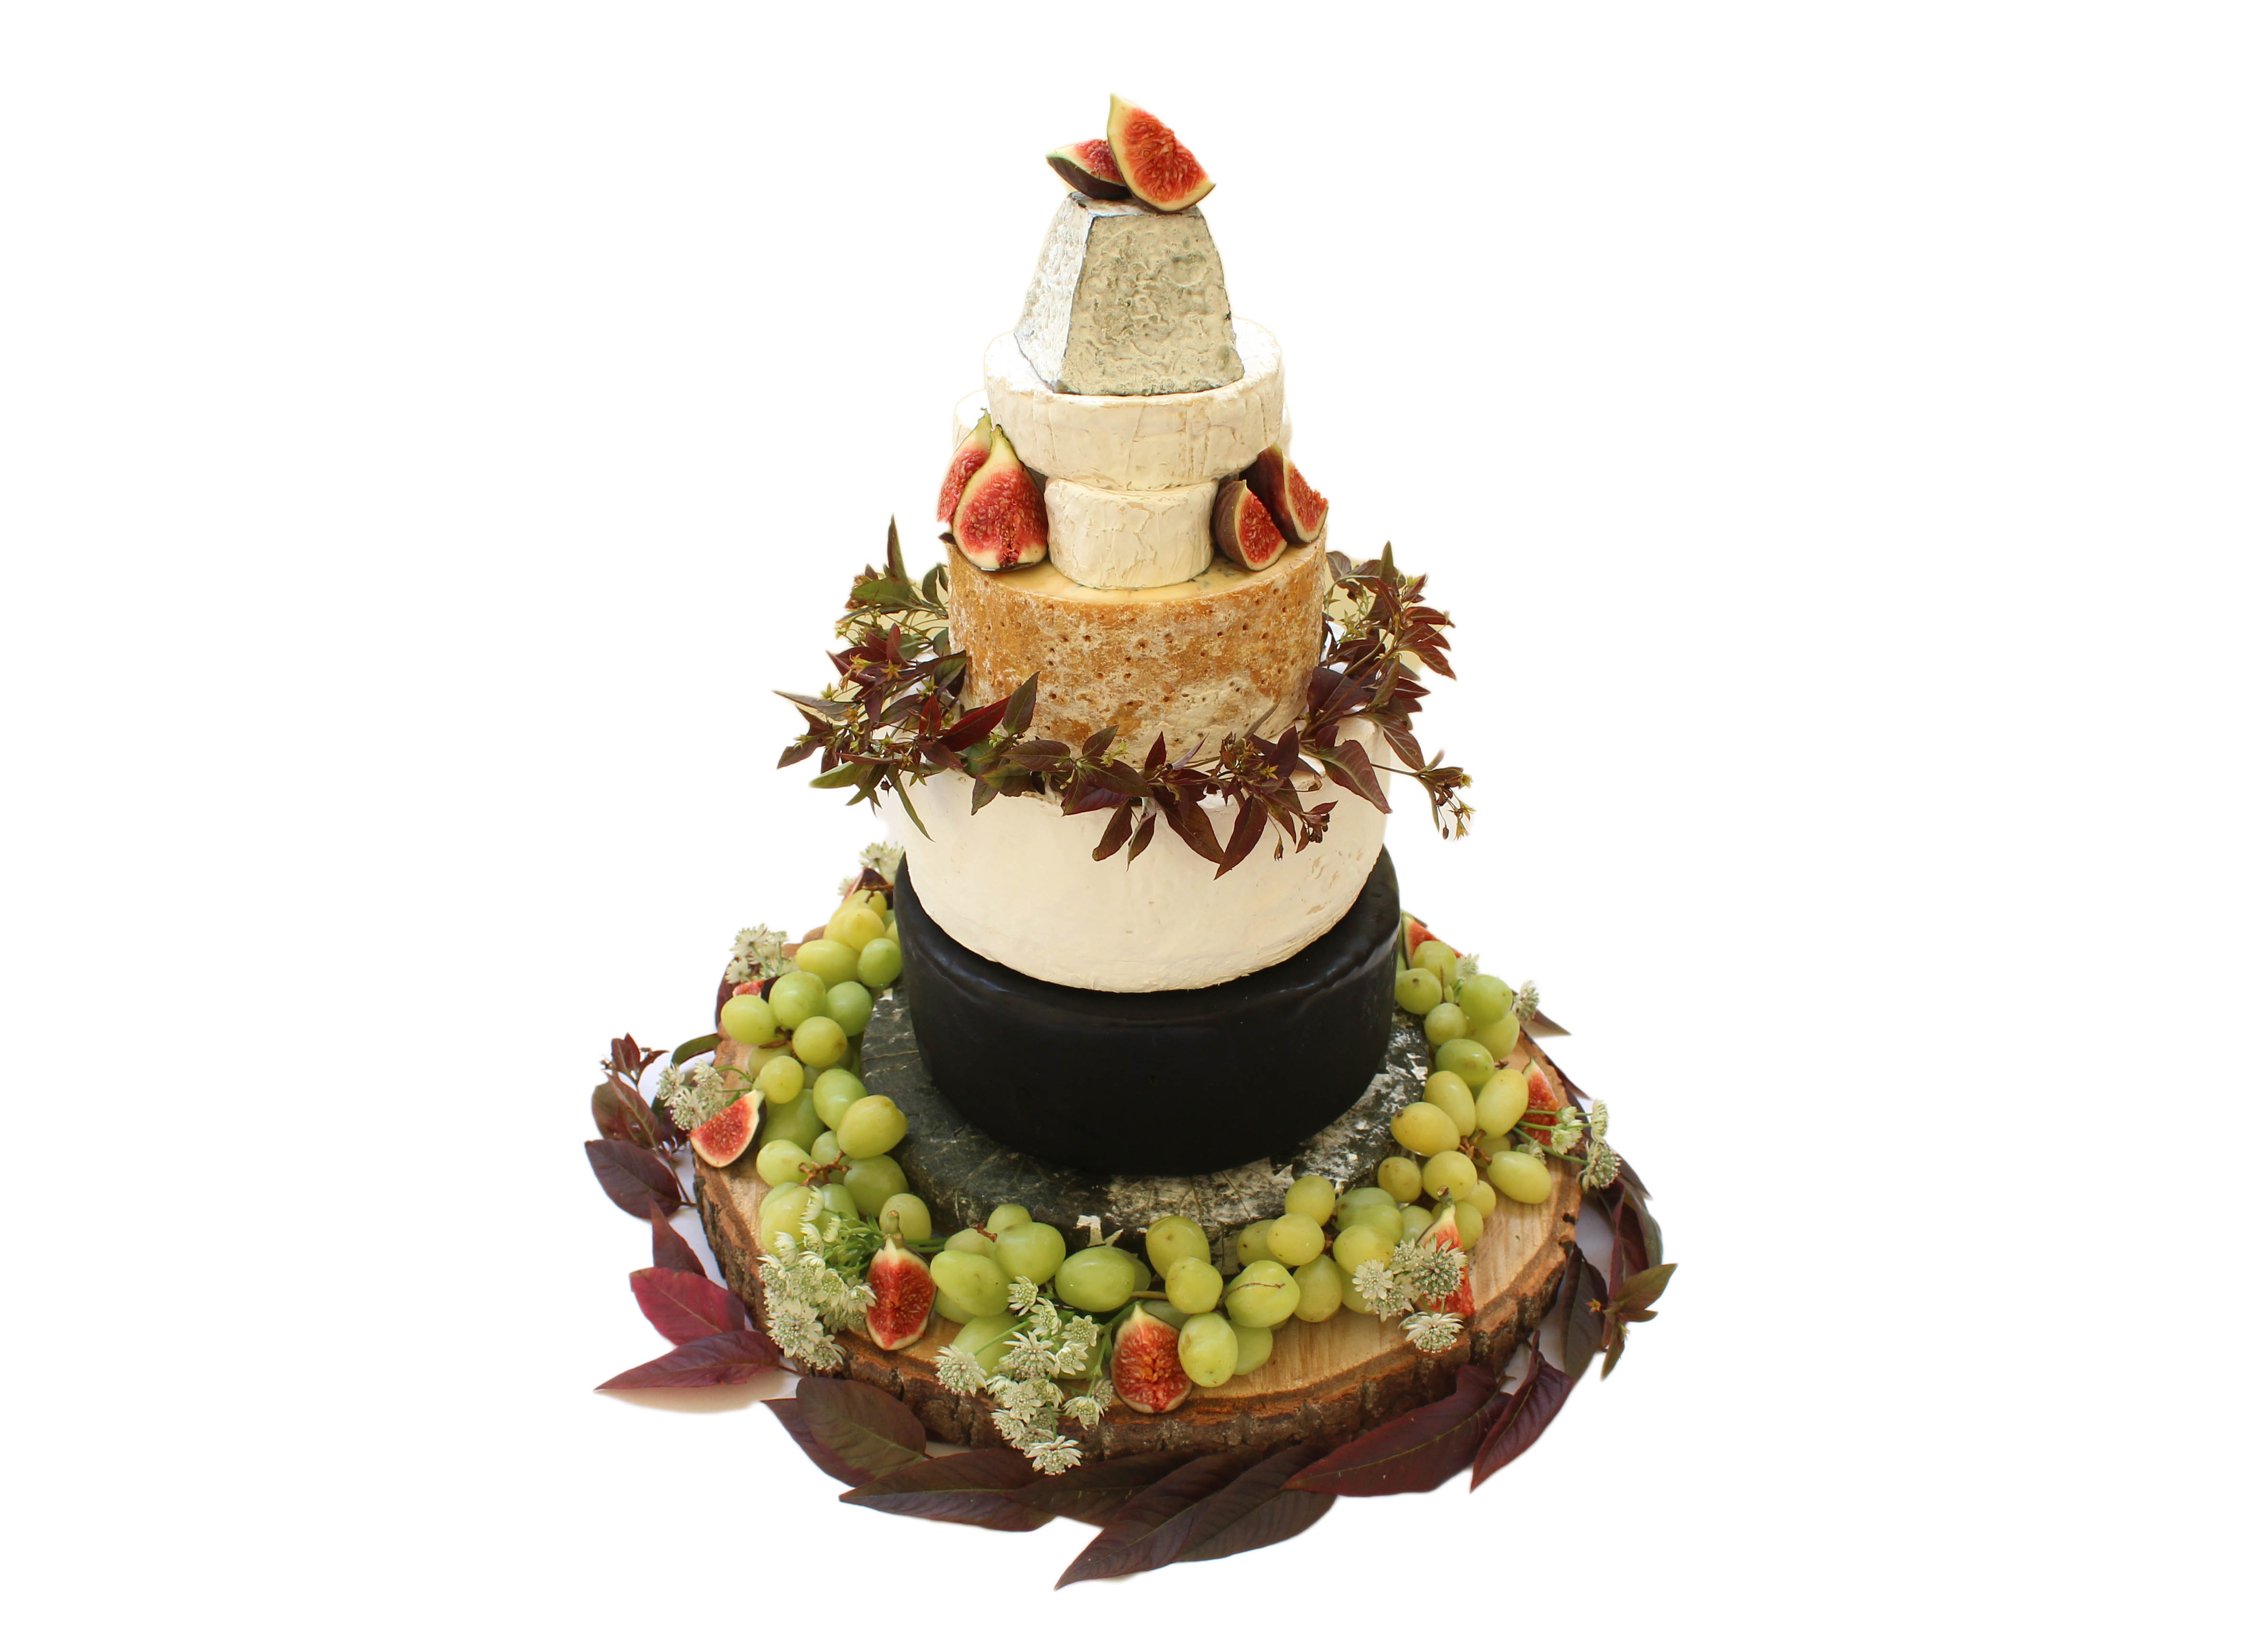 Otters Cheese Celebration Cake Example 2 | Otters Fine Foods